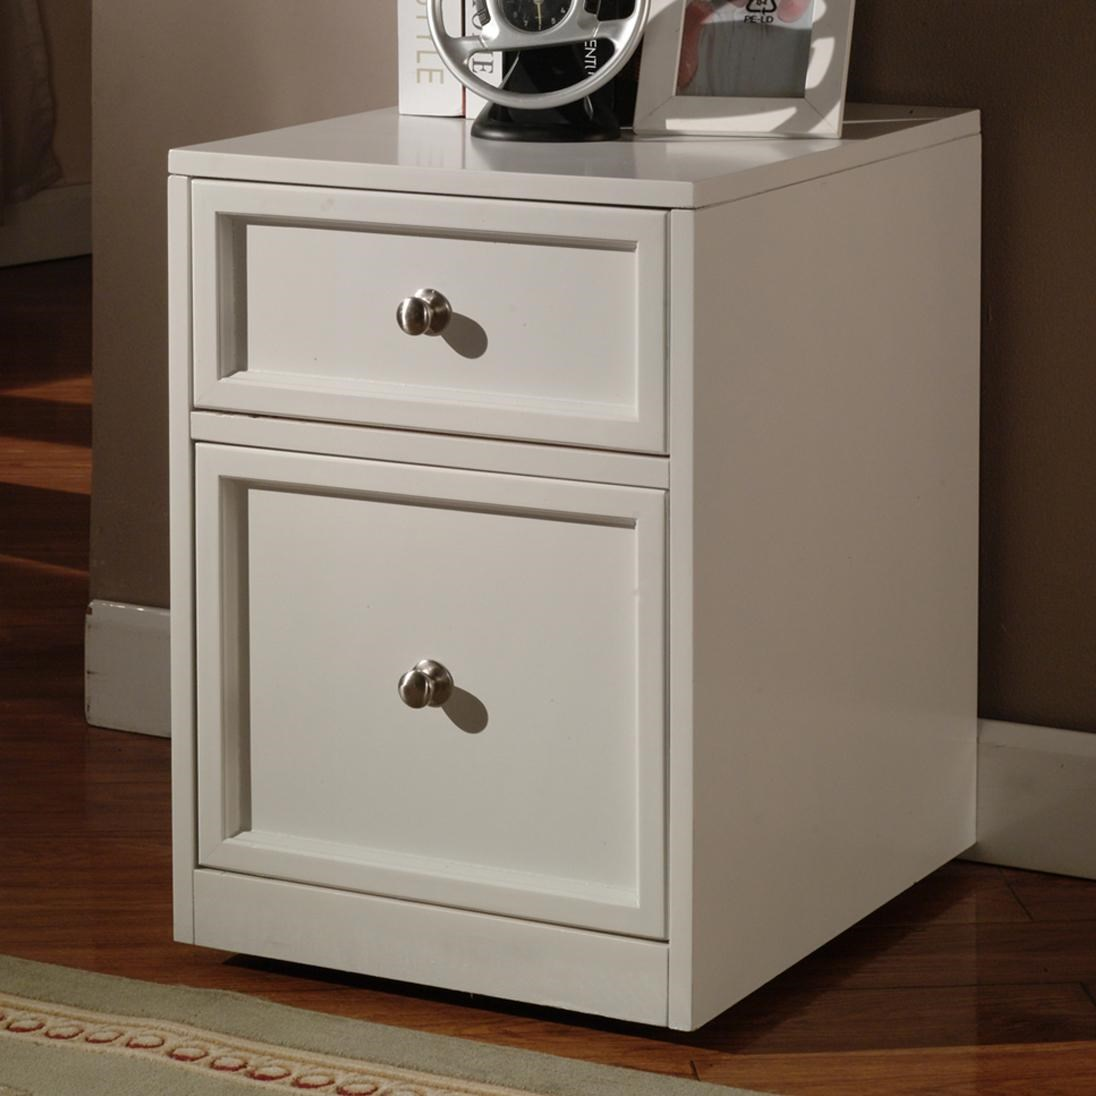 Rolling Filing Cabinets Parker House Boca Rolling File Fashion Furniture File Cabinets